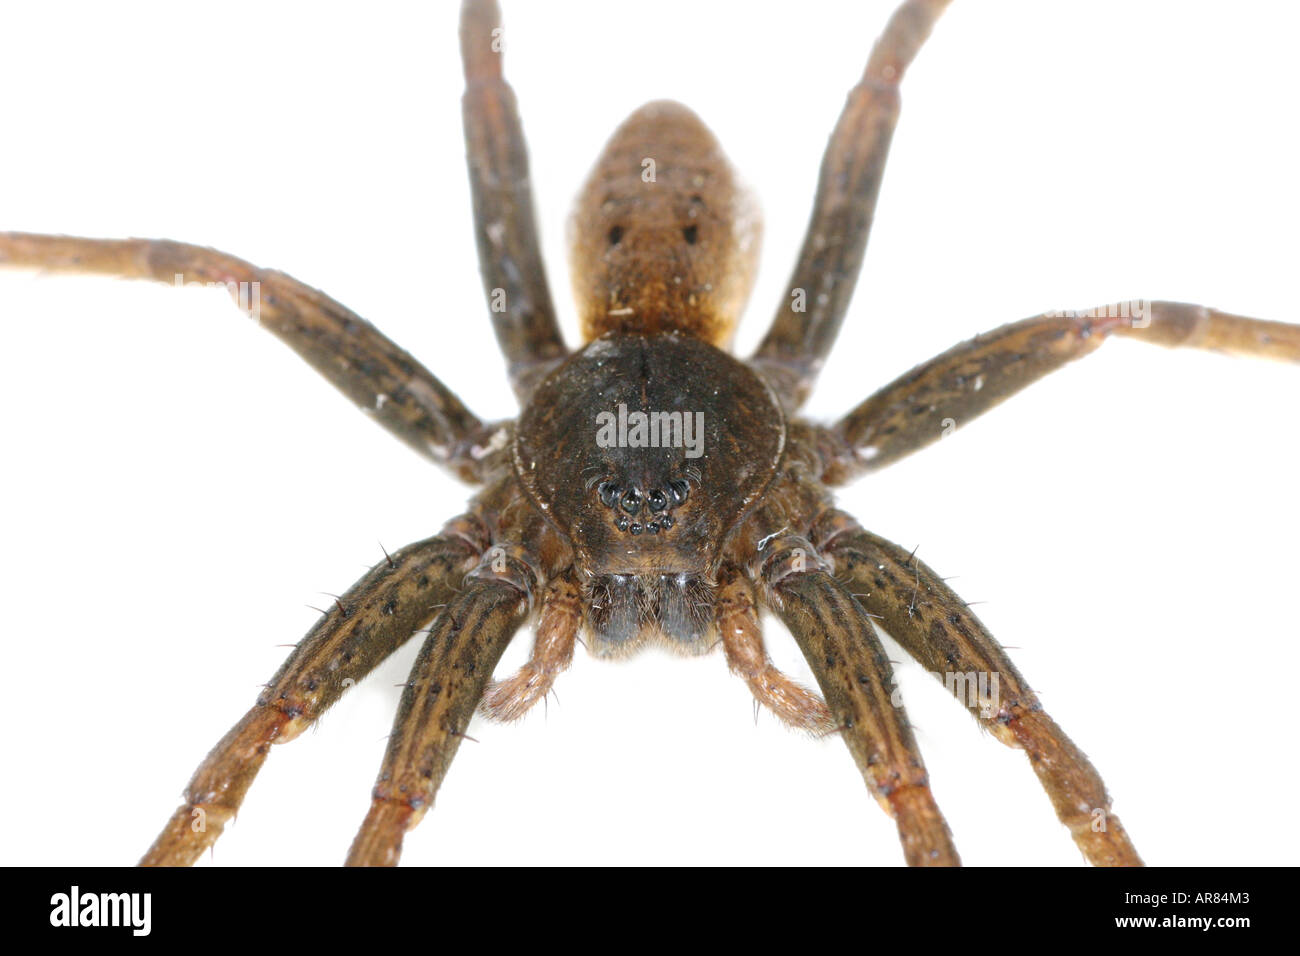 Fen Raft Spider Dolomedes plantarius, a fishing spider, on white background Stock Photo